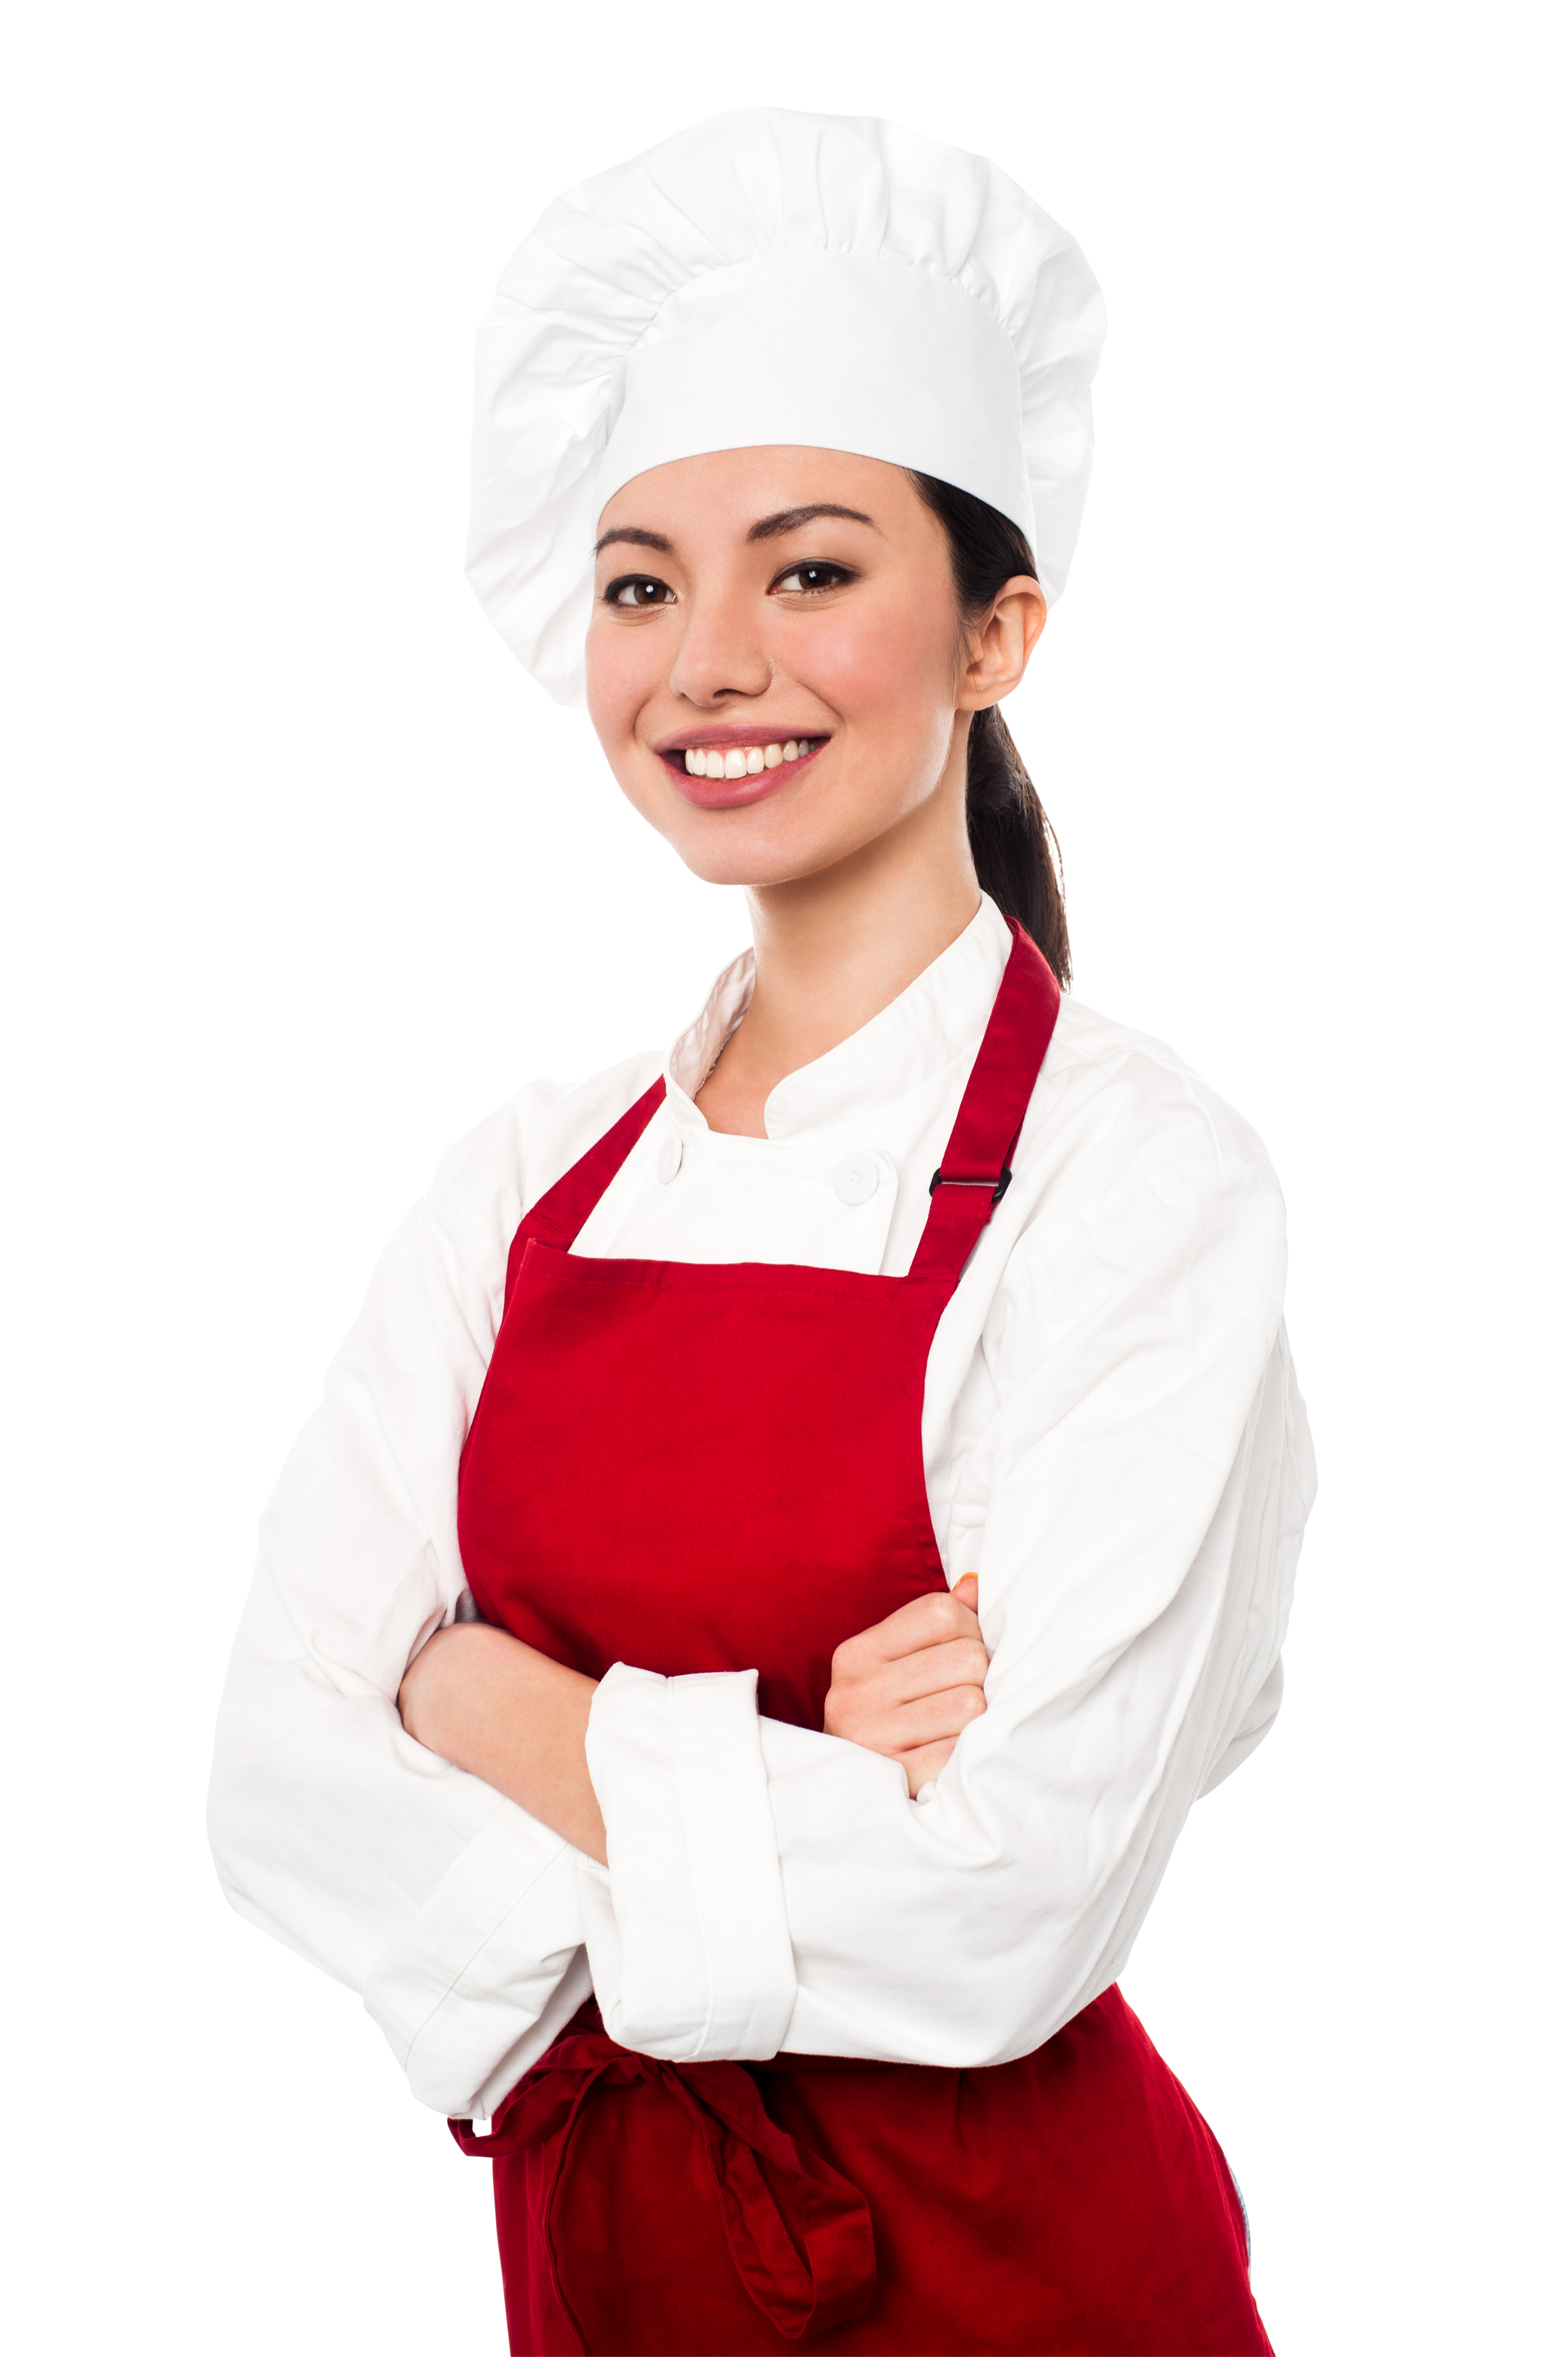 Woman Chef PNG Image